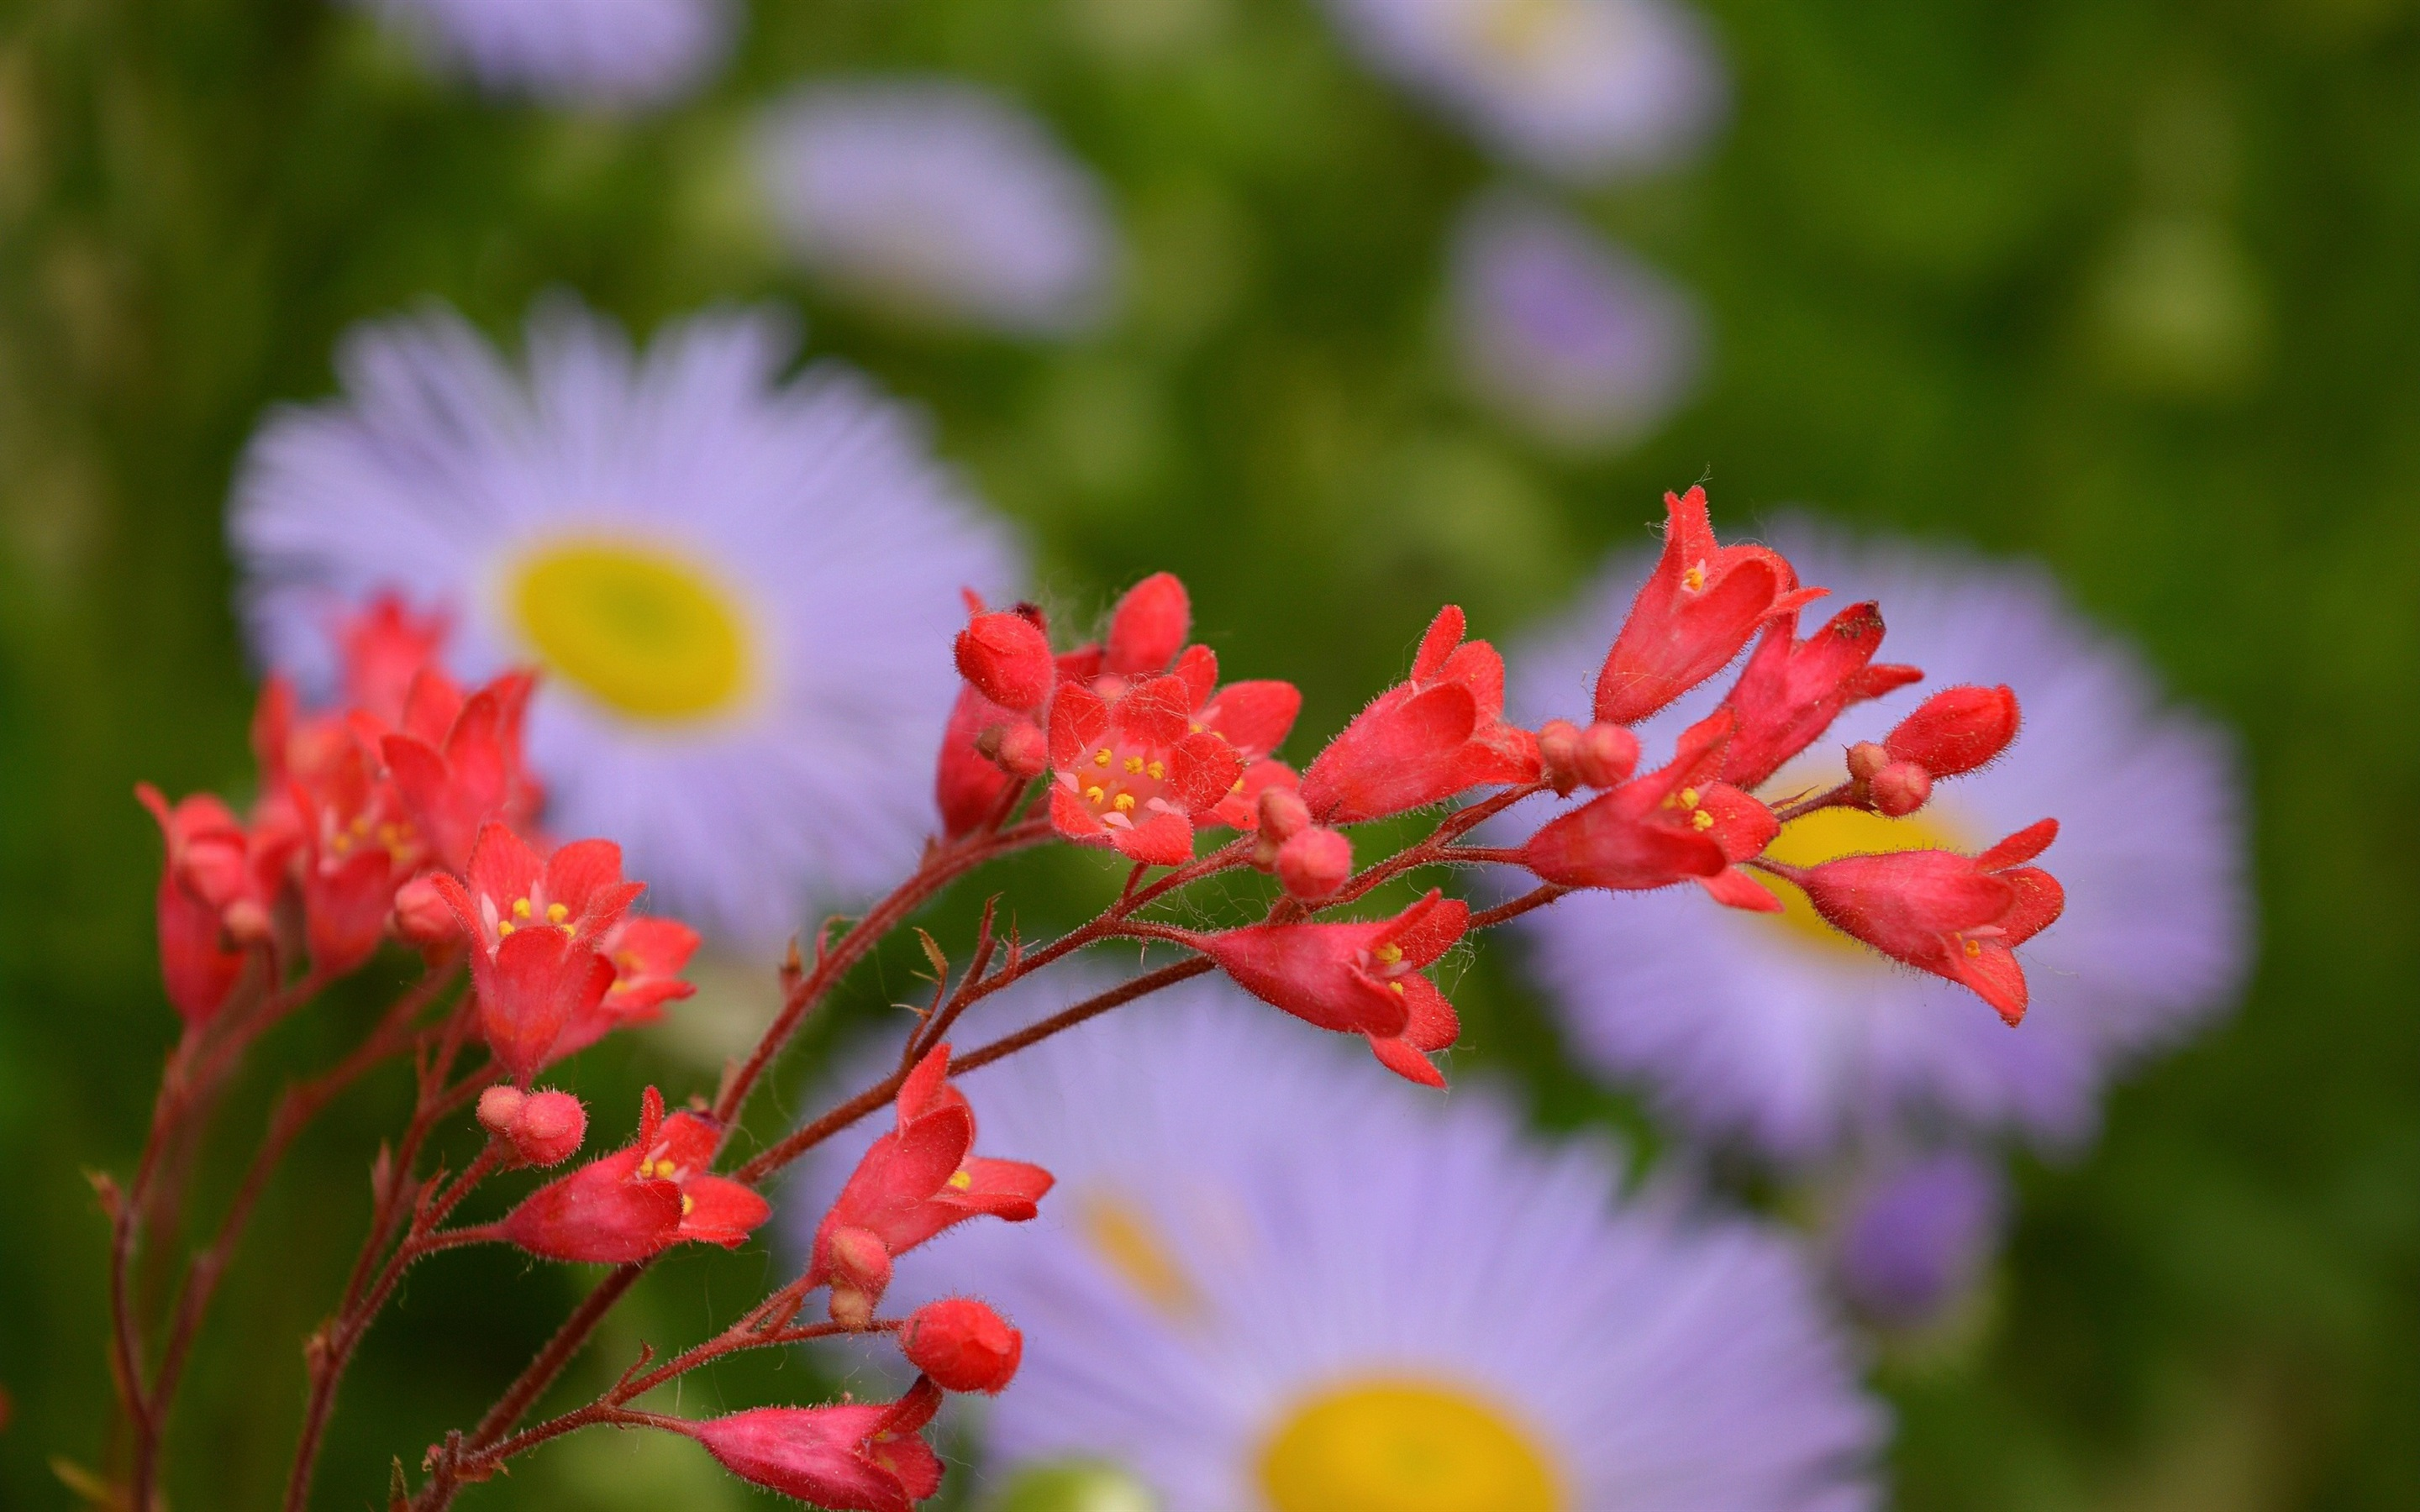 Wallpaper Spring Red Flowers Close Up 2880x1800 Hd Picture Image